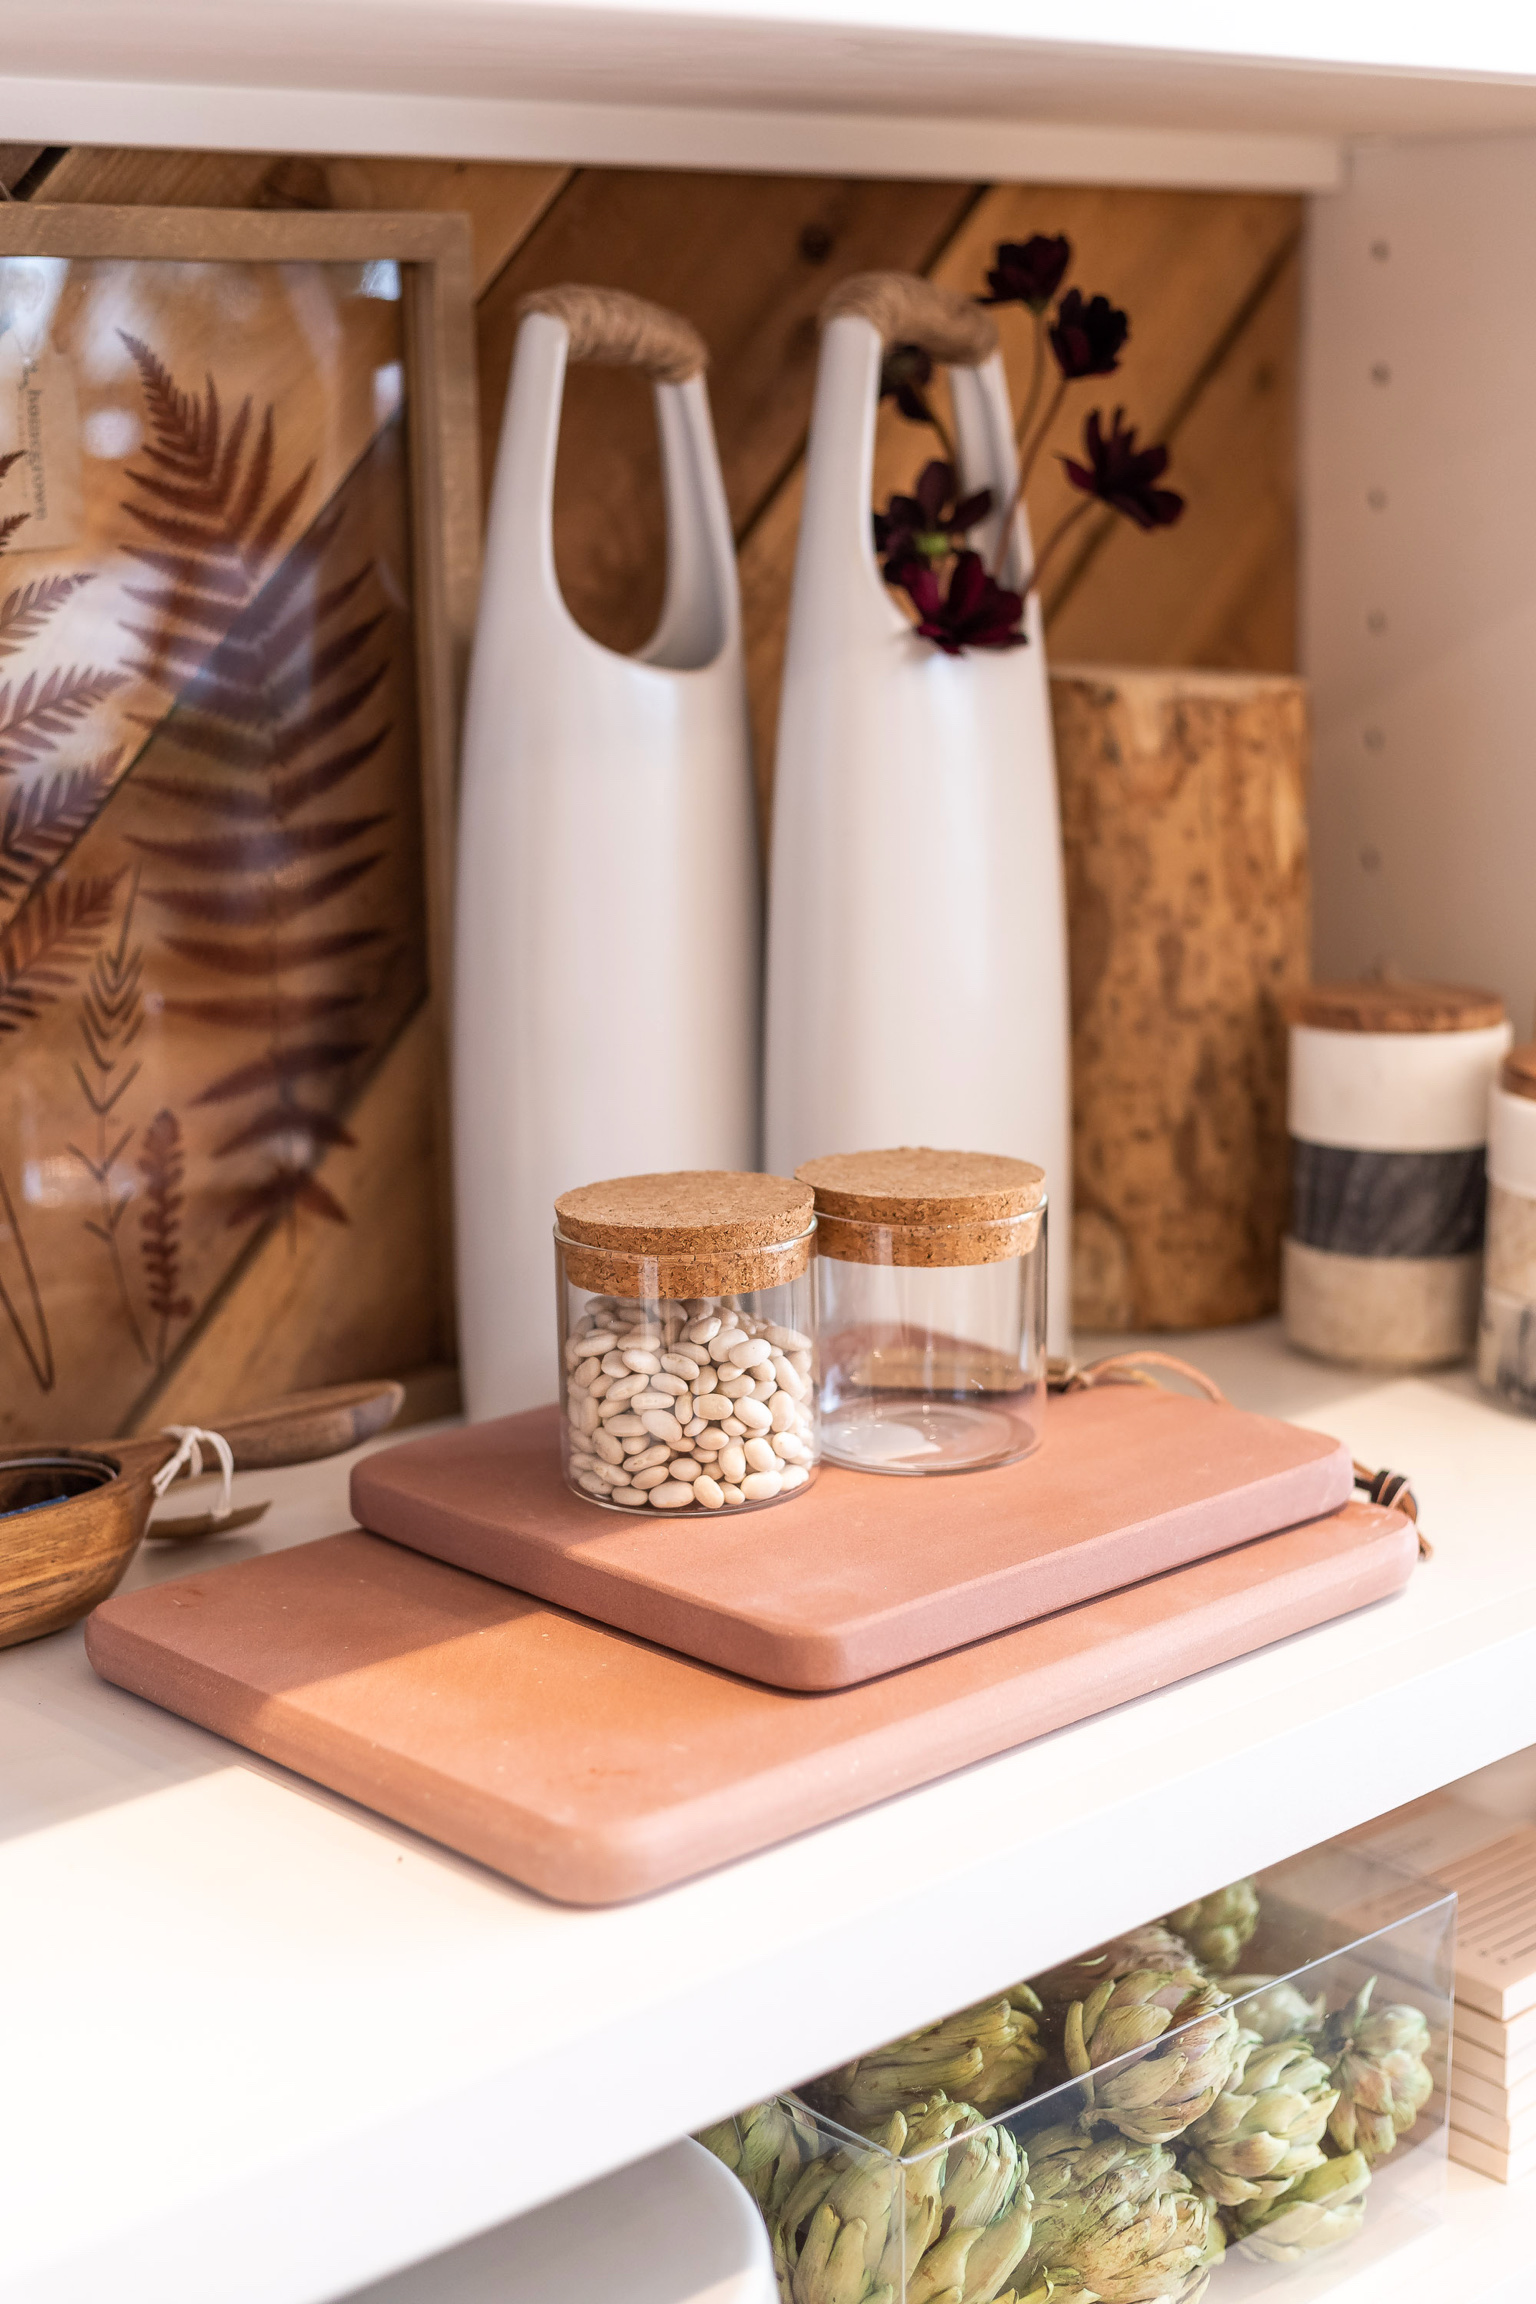 Home Decor at Homegrown Marketplace